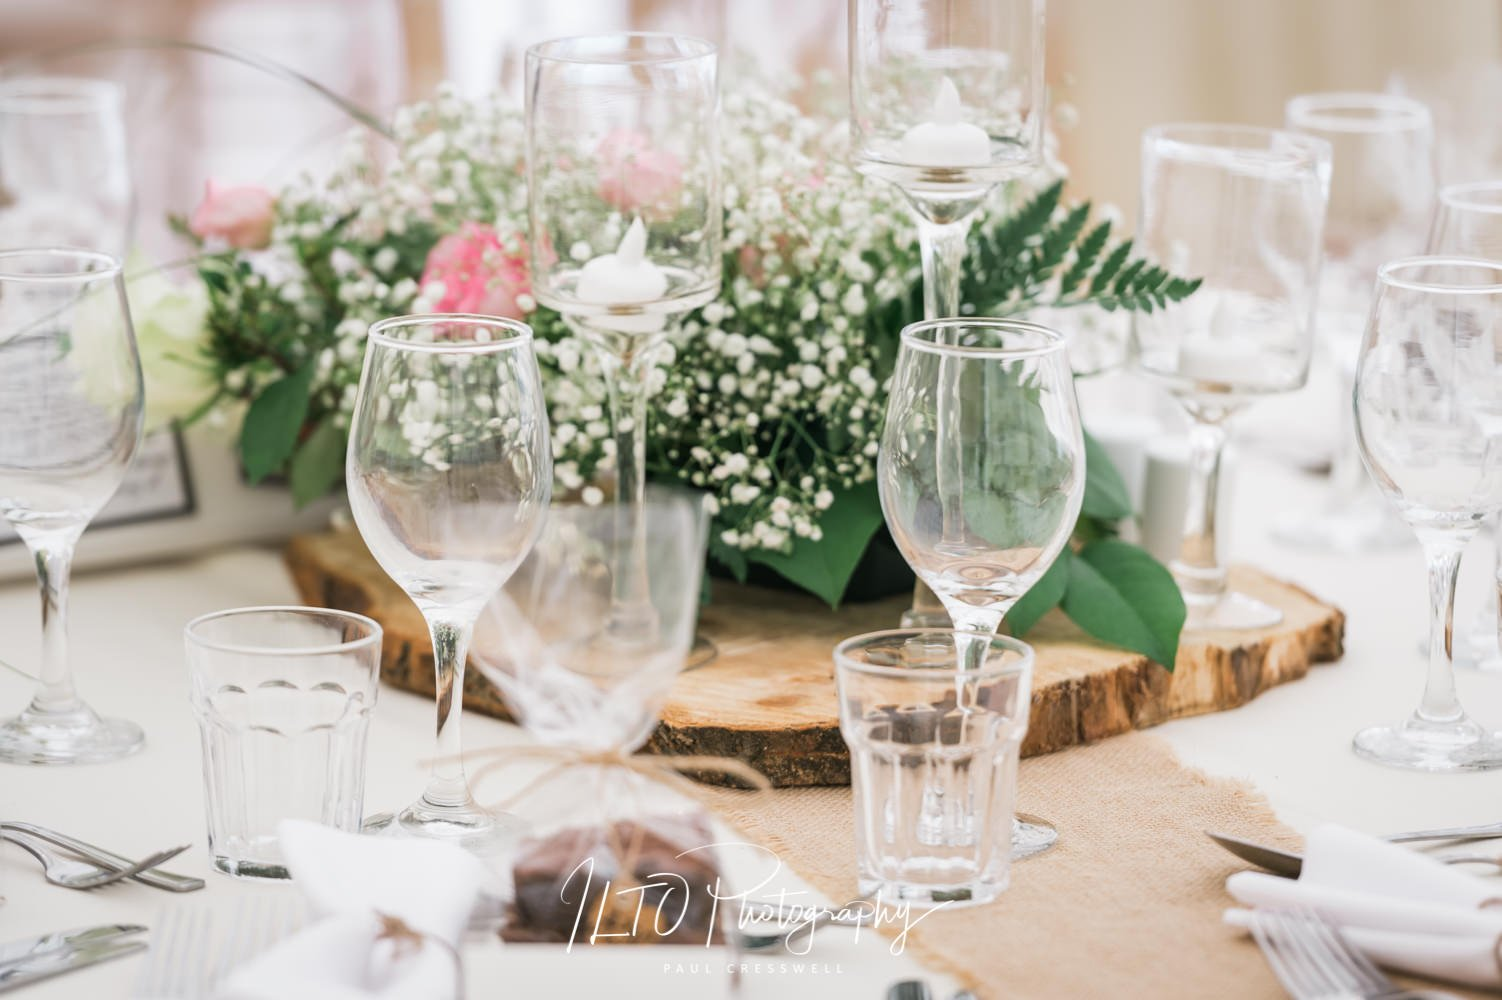 Table decorations for a wedding yorkshire wedding photographer